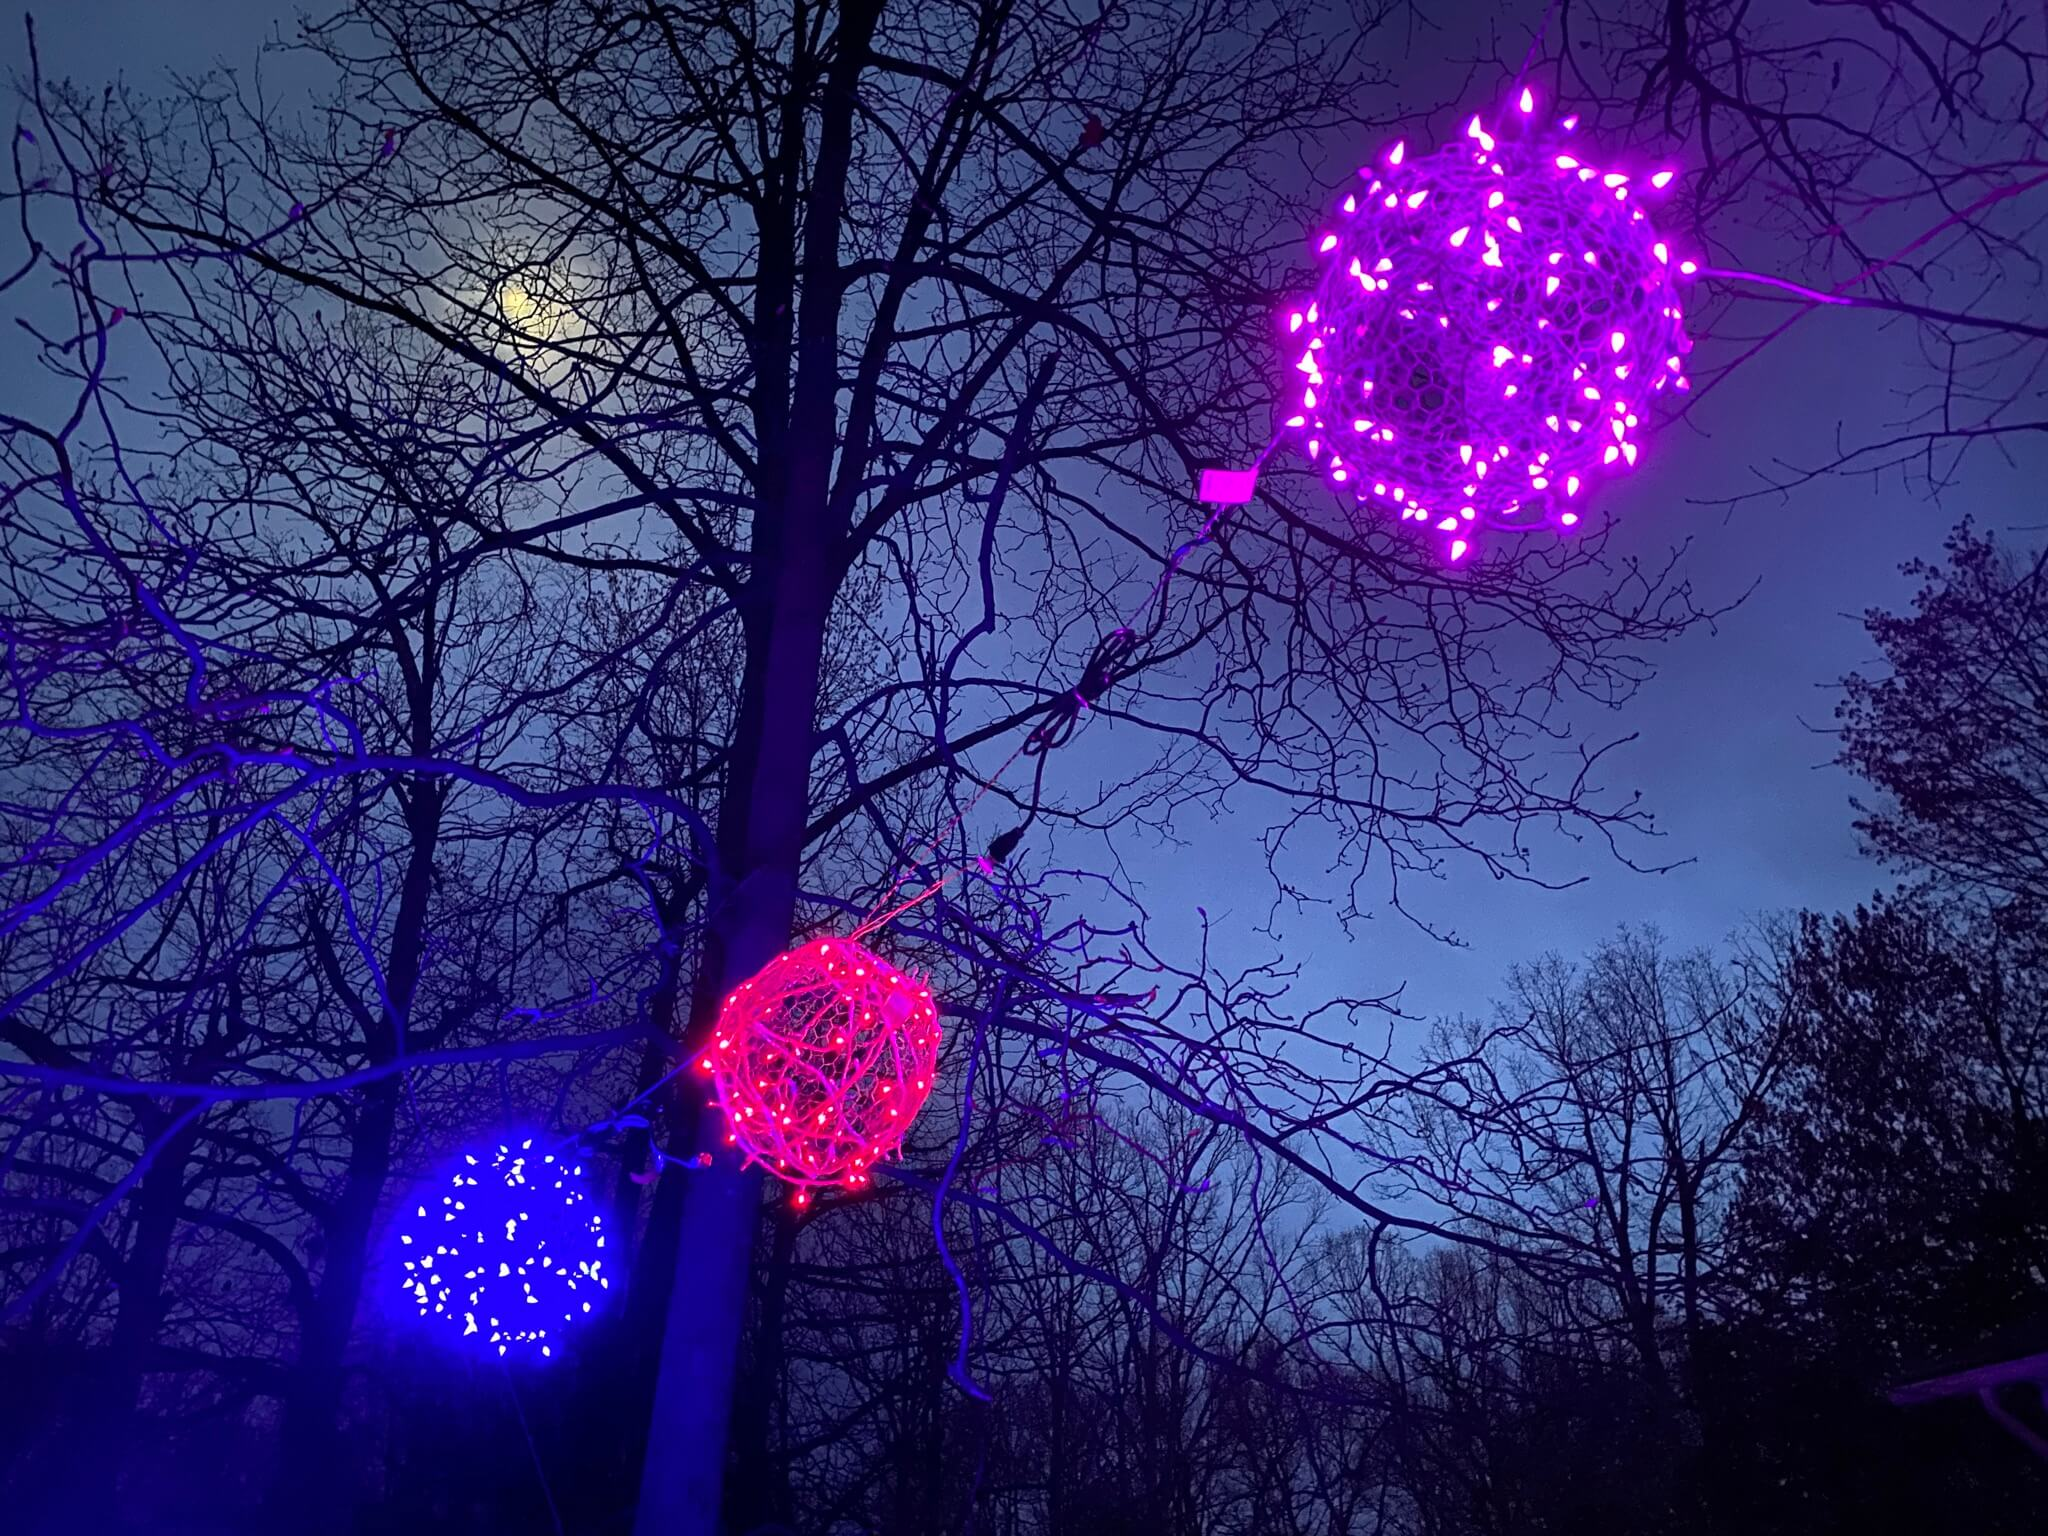 Lights in a tree